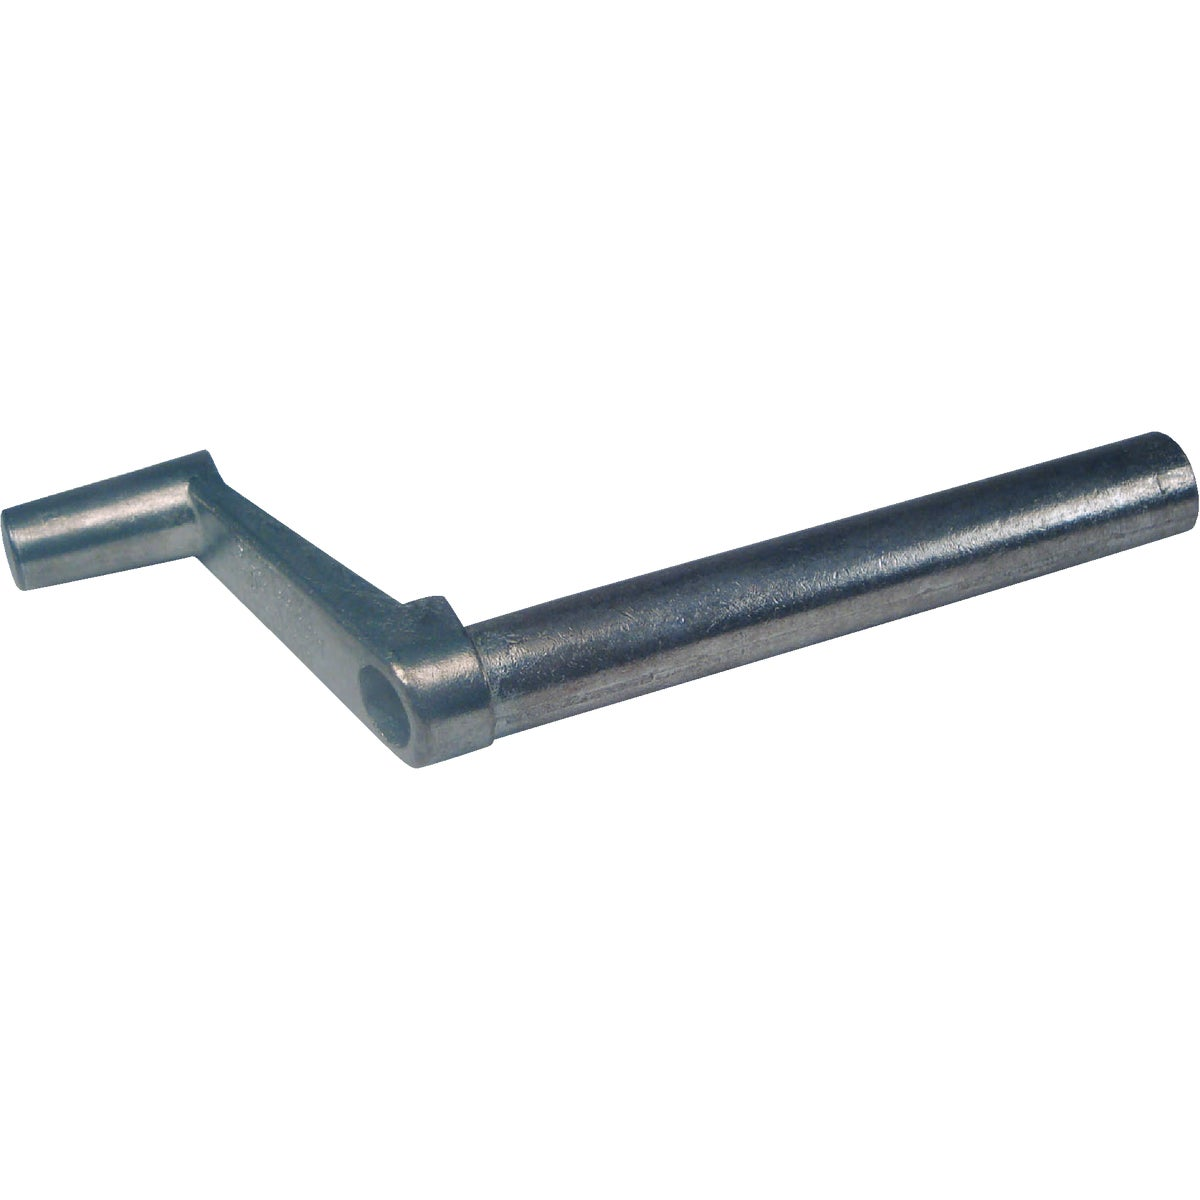 "3"" AWNING WINDOW CRANK - WP-8888C by U S Hardware"